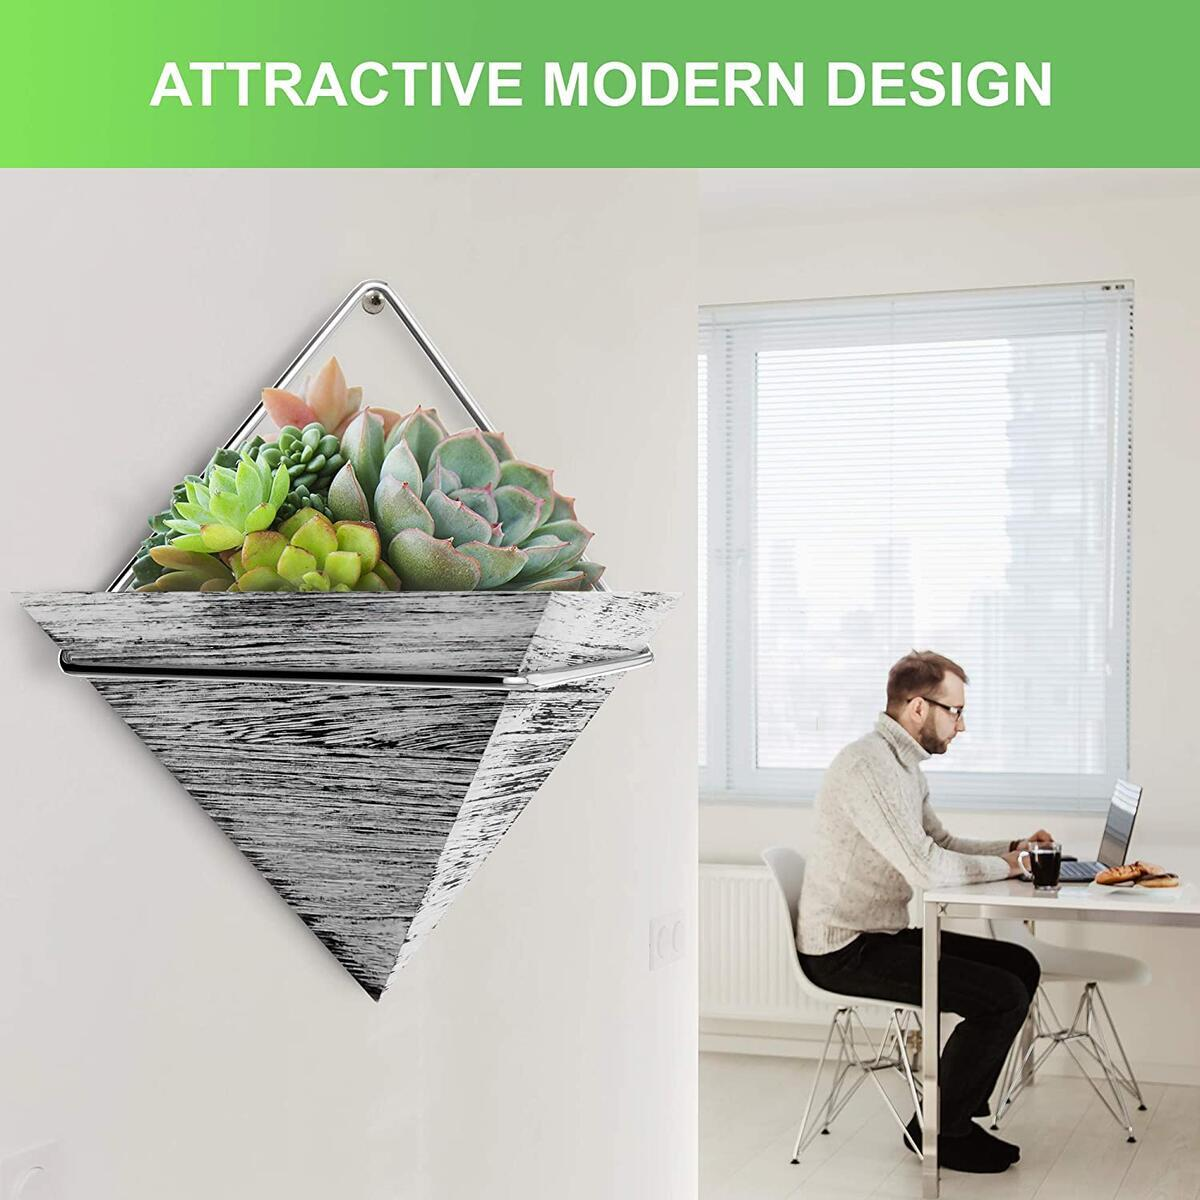 Wall Hanging Planter for Succulent & Plants - Modern Indoor Triangle Plant Holder in Rustic Wood - Wall Planters Décor for Home or Farmhouse - Small Wall Pots for Succulents(Rustic White)